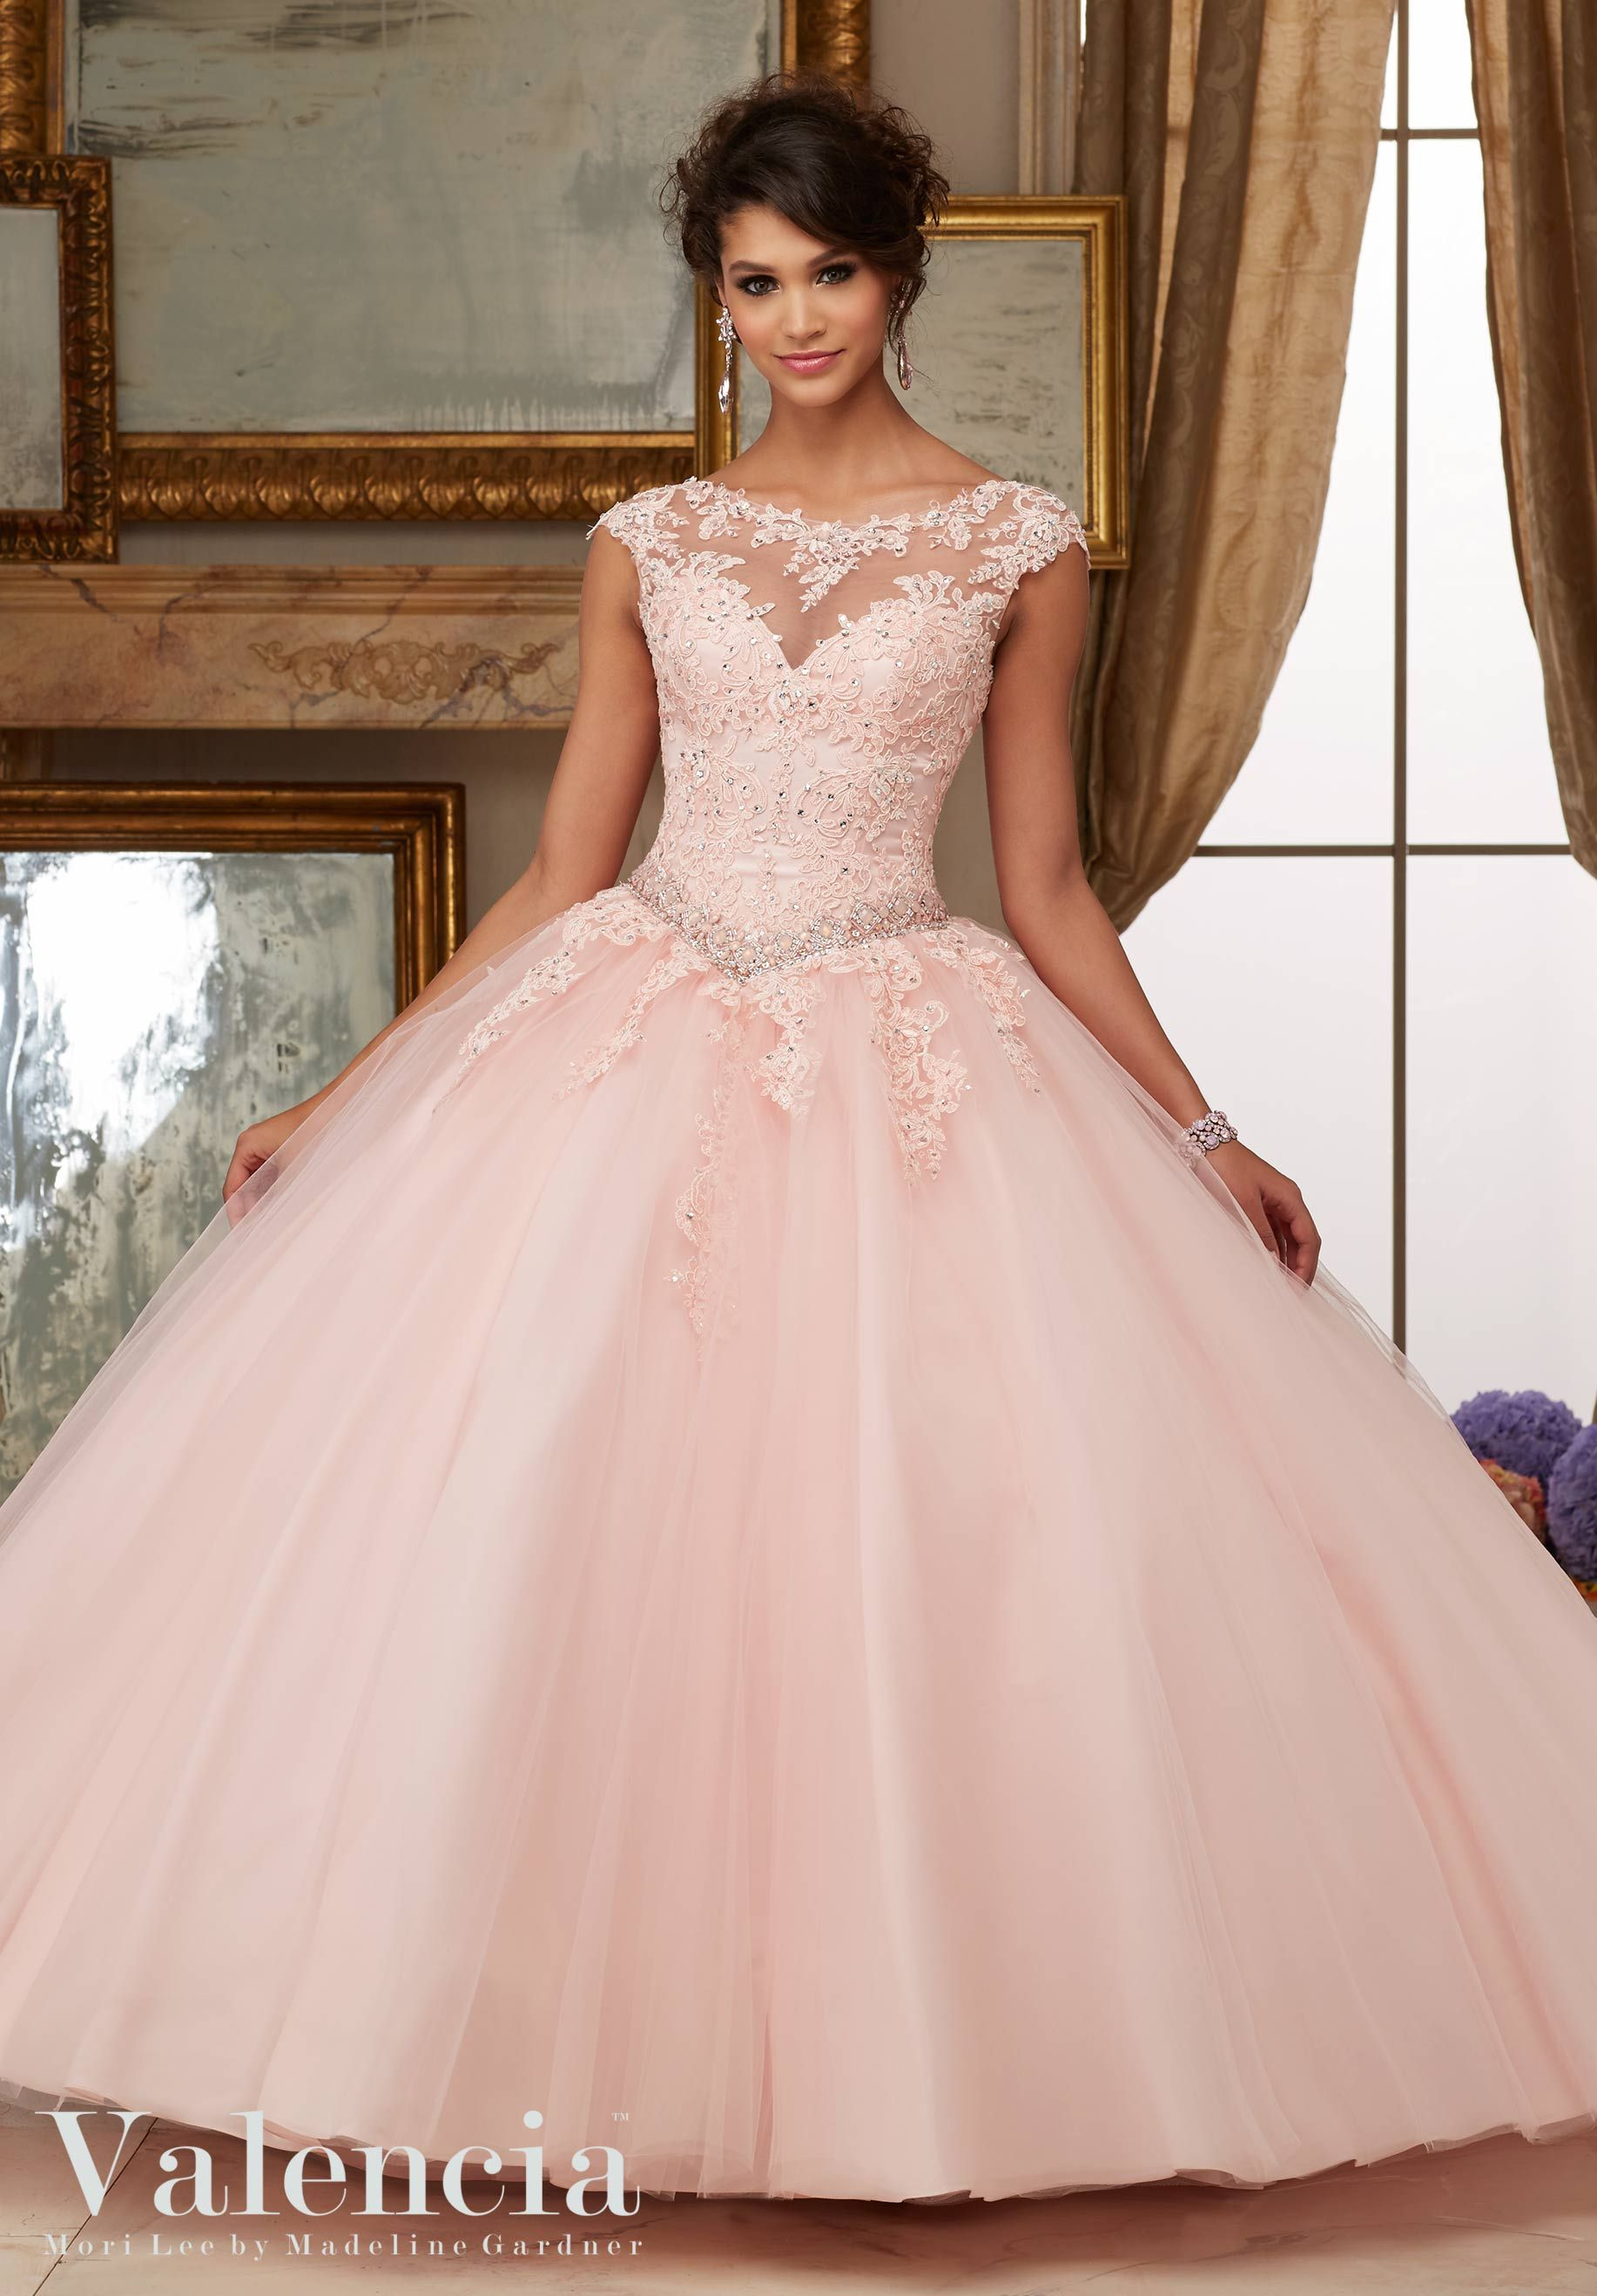 Pin de Isabella en Quinceanera ideas | Pinterest | Tablero, Centros ...